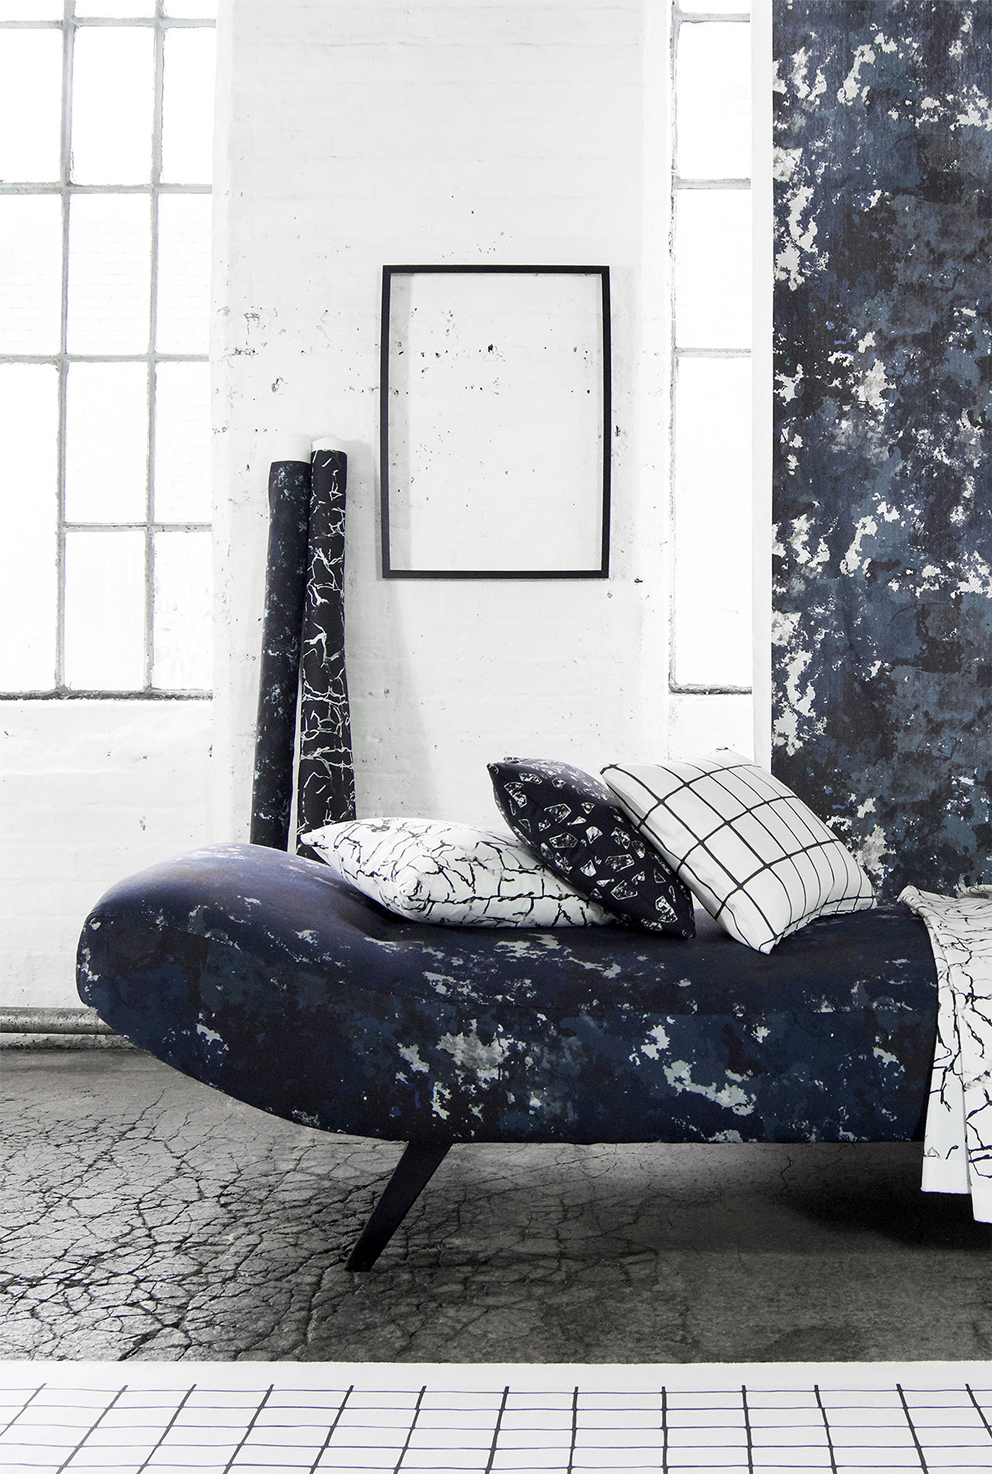 French For Pineapple Blog - Florrie + Bill The Studio Collection Chaise in Factory setting